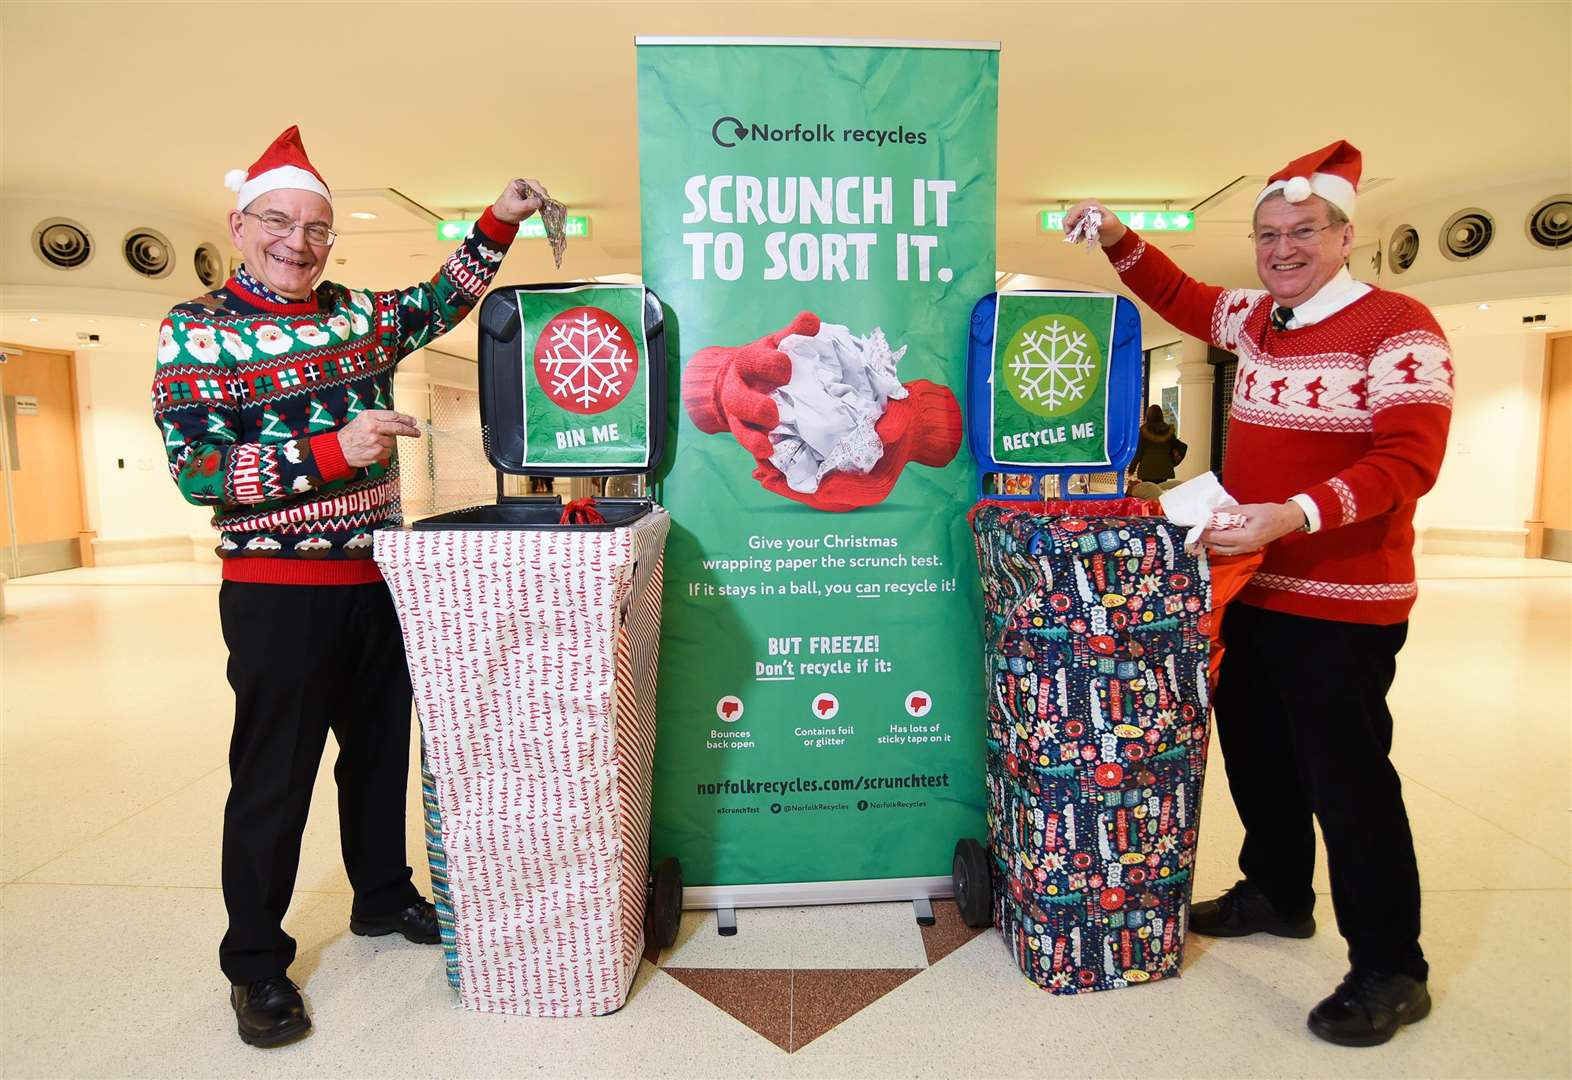 Scrunch it to sort Christmas wrapping paper, say Norfolk waste officials